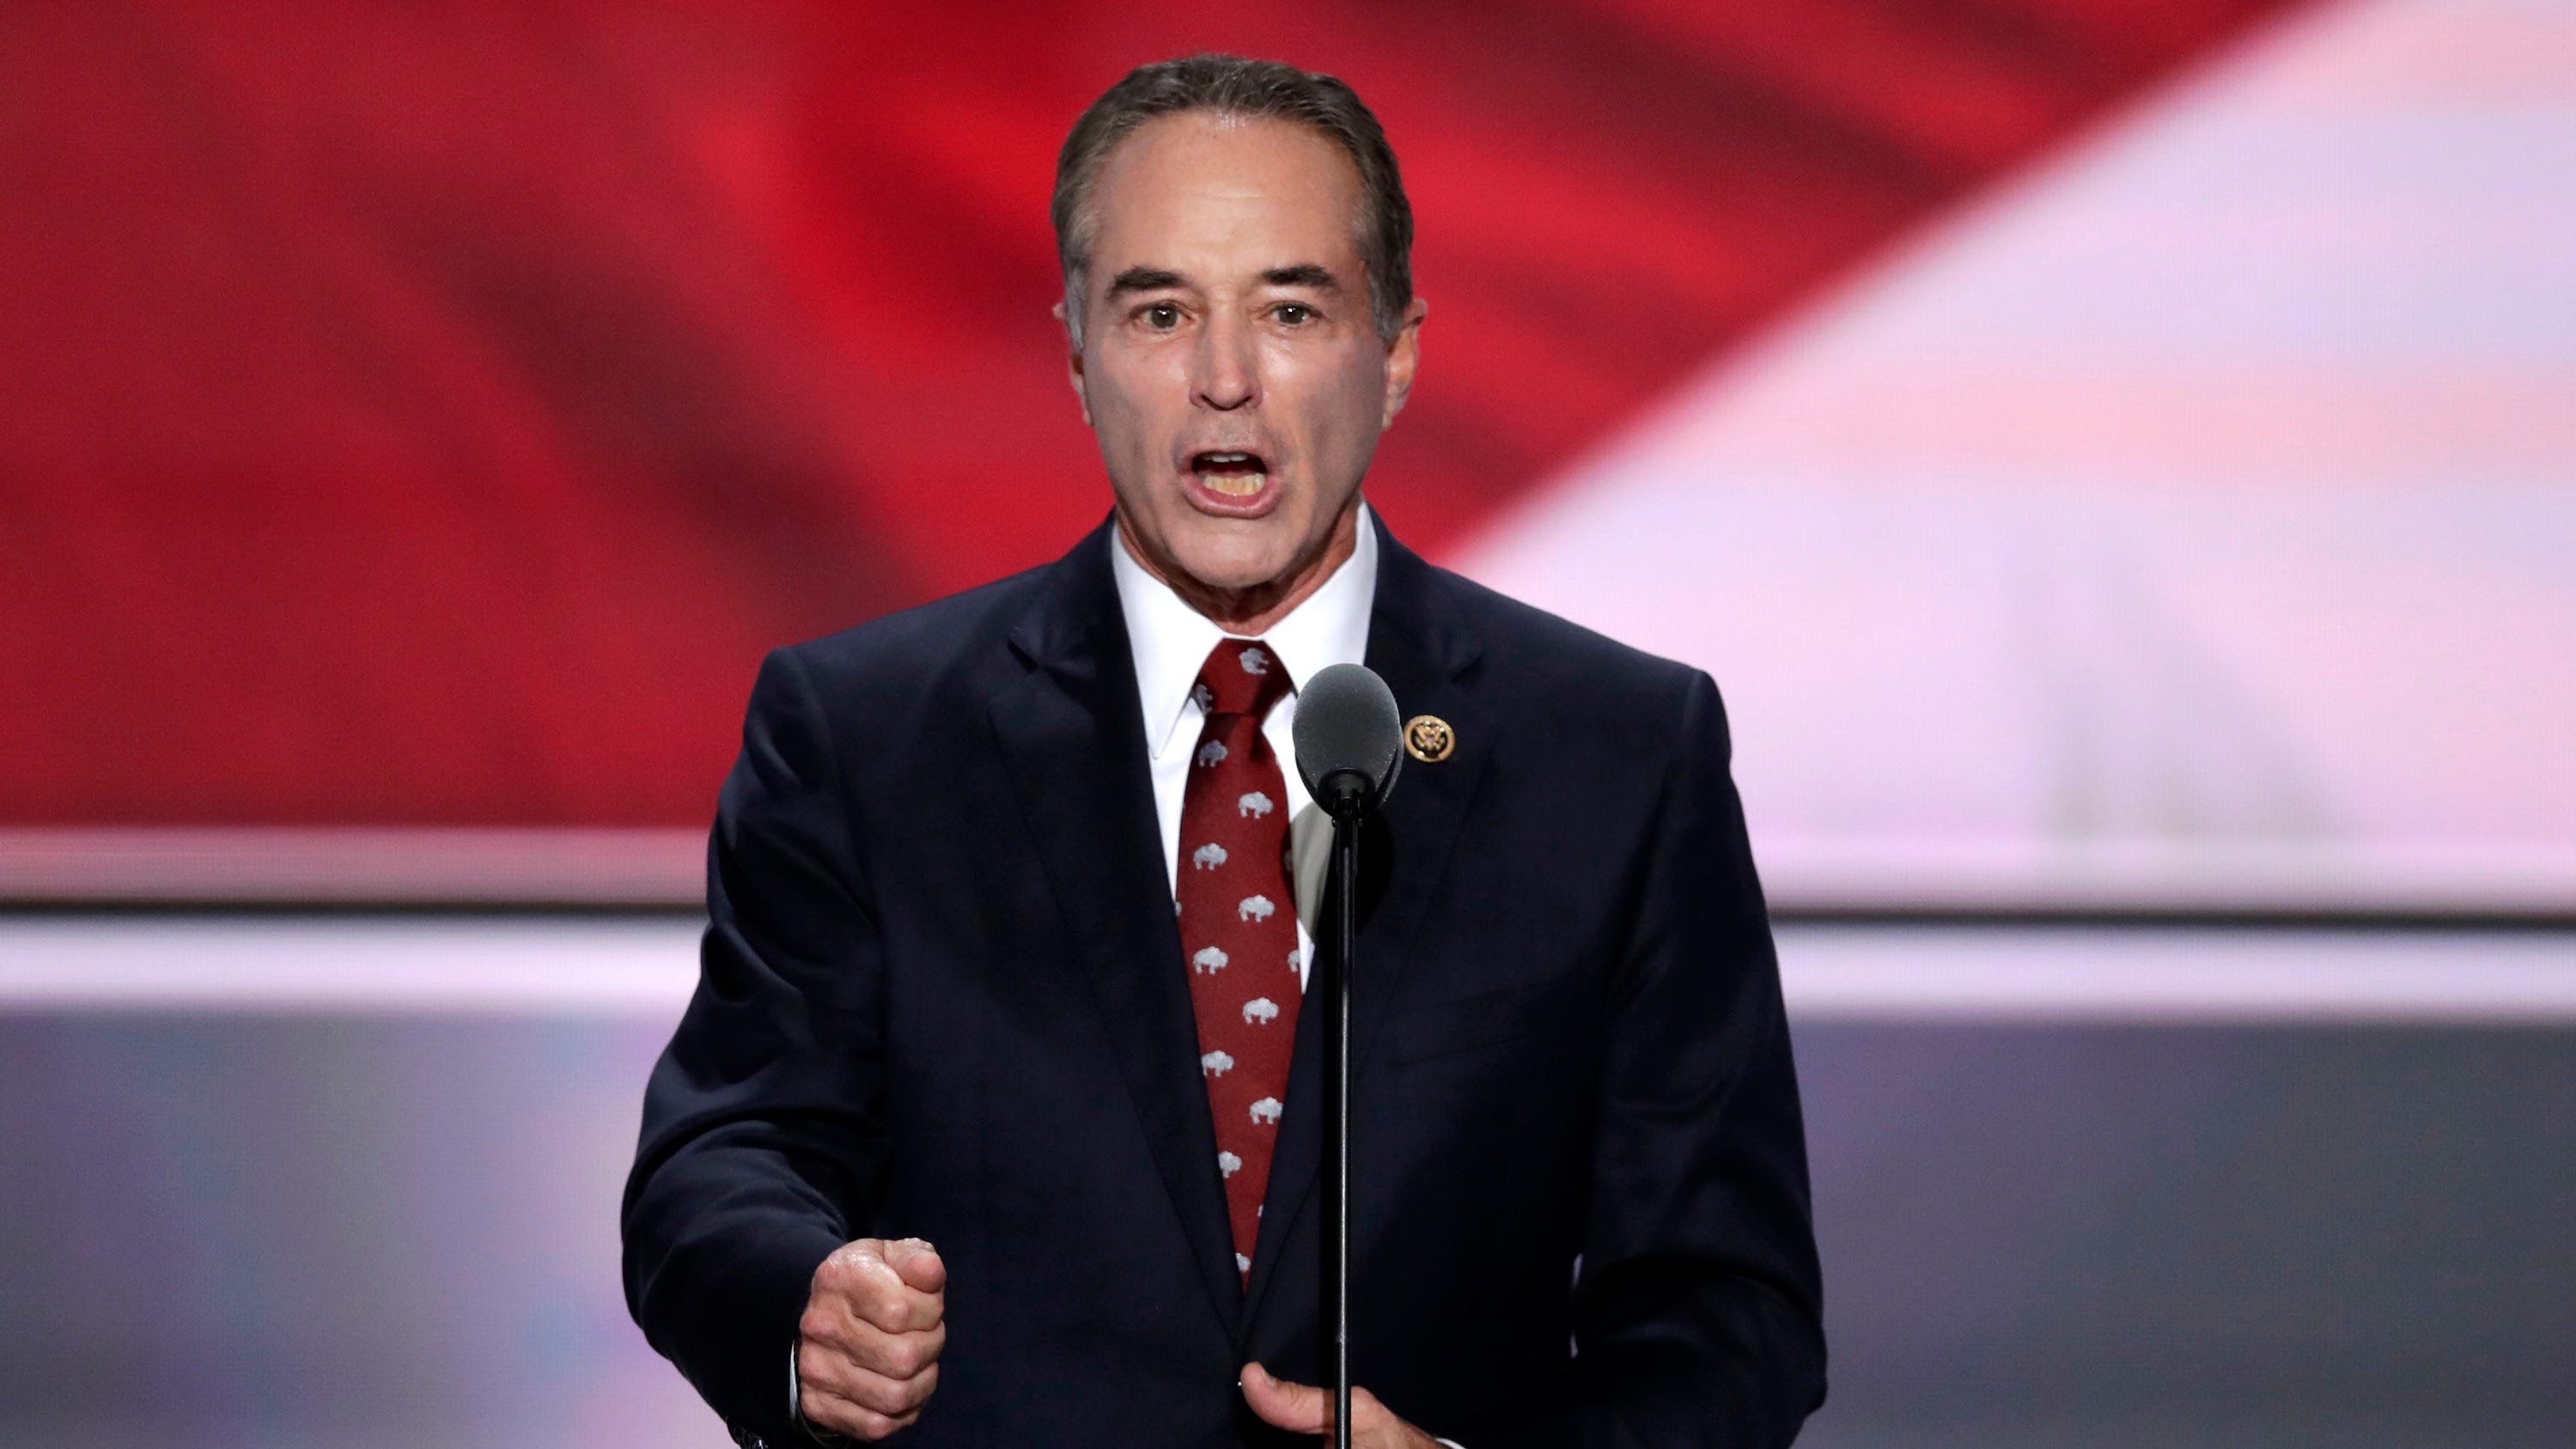 The stories making the most noise today: Rep. Chris Collins arrested and indicted; election takeaways for House Republicans; Virginia issues state of emergency. #TheShortList